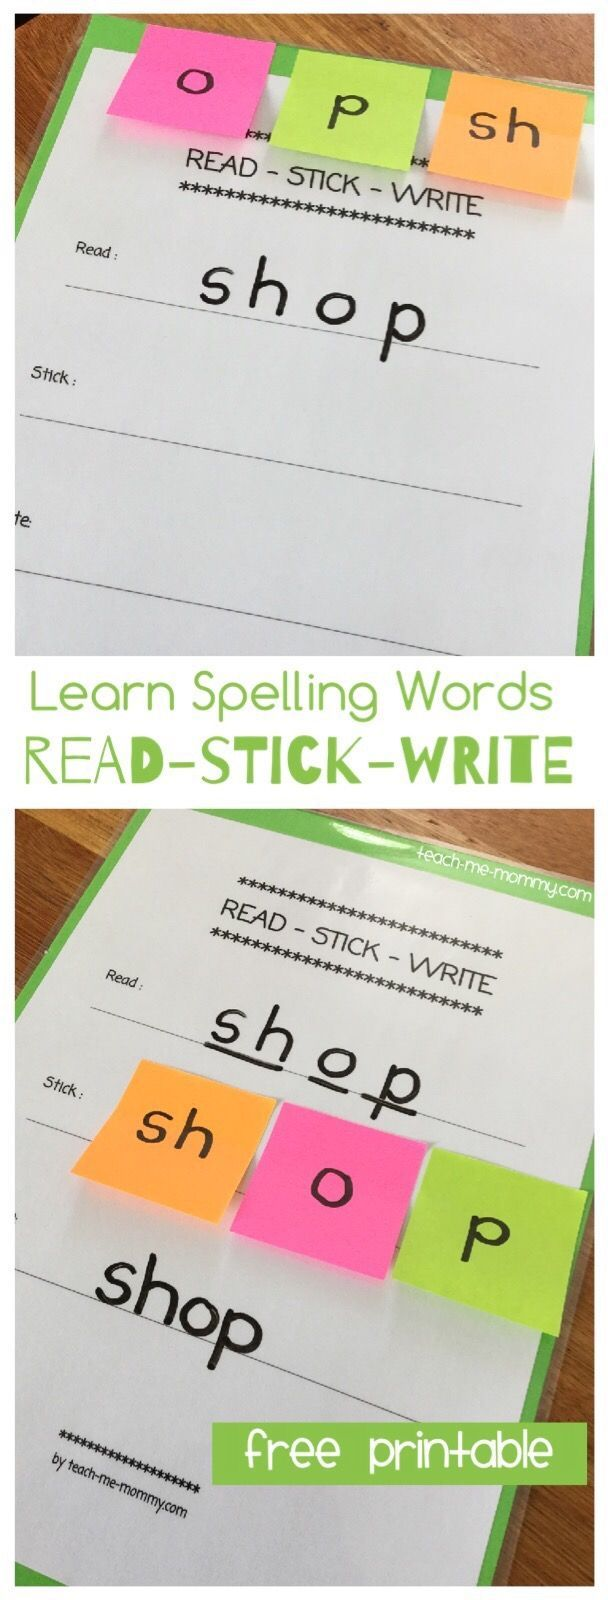 Worksheet How To Learn Spellings Quickly 1000 ideas about learn spelling on pinterest word read stick write method to words free printable